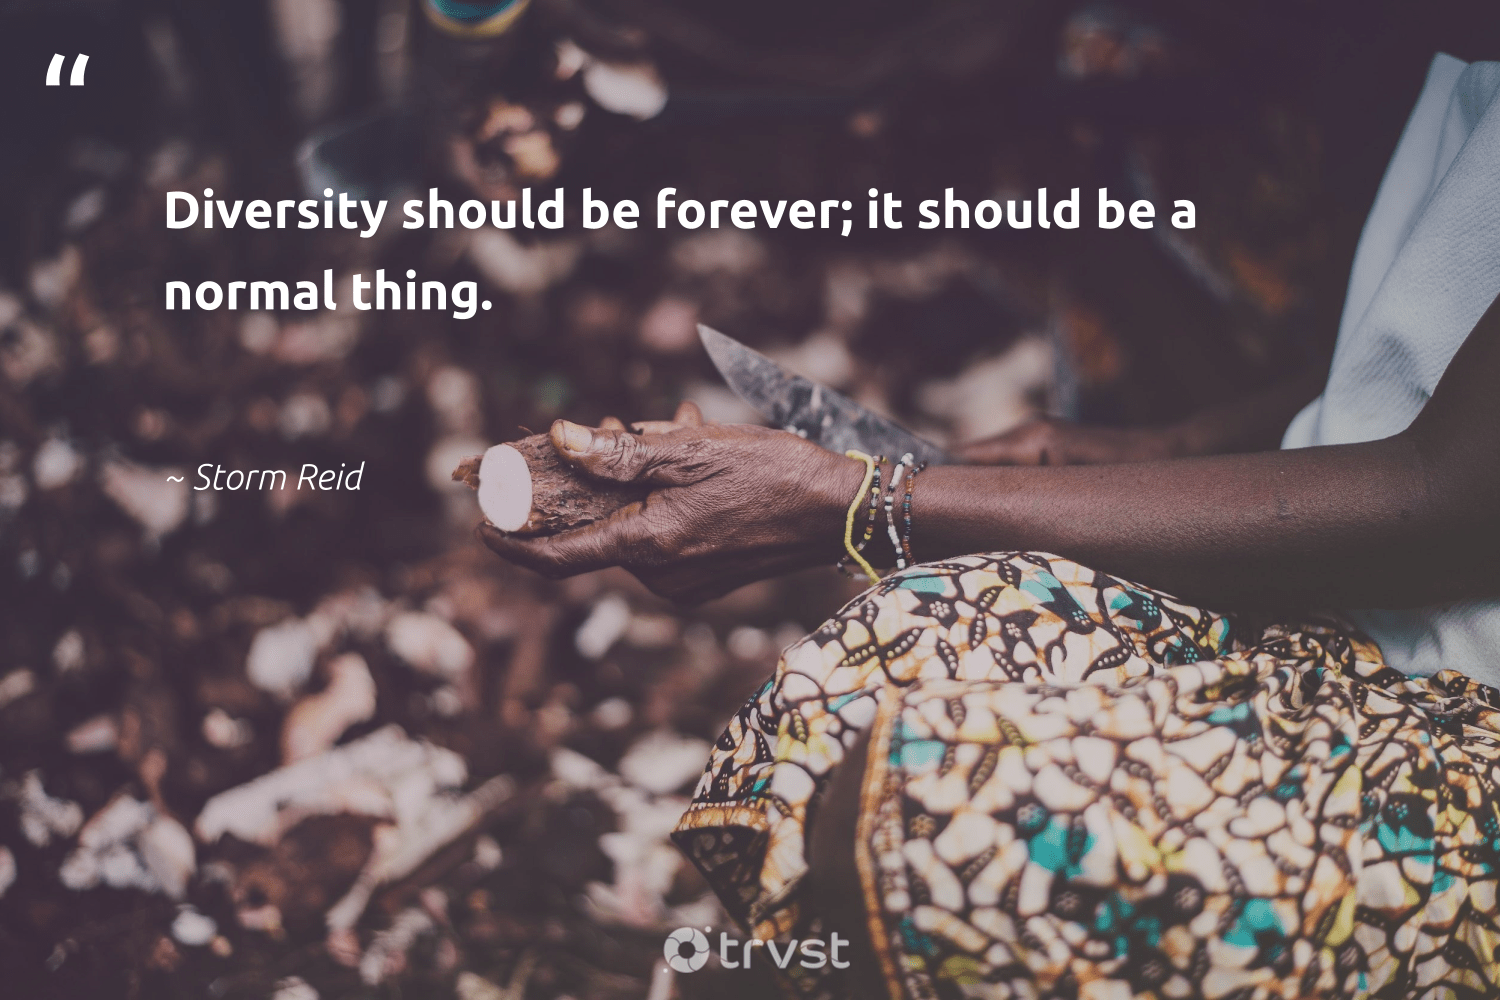 """Diversity should be forever; it should be a normal thing.""  - Storm Reid #trvst #quotes #diversity #representationmatters #discrimination #weareallone #bethechange #gogreen #inclusion #socialgood #socialchange #dosomething"